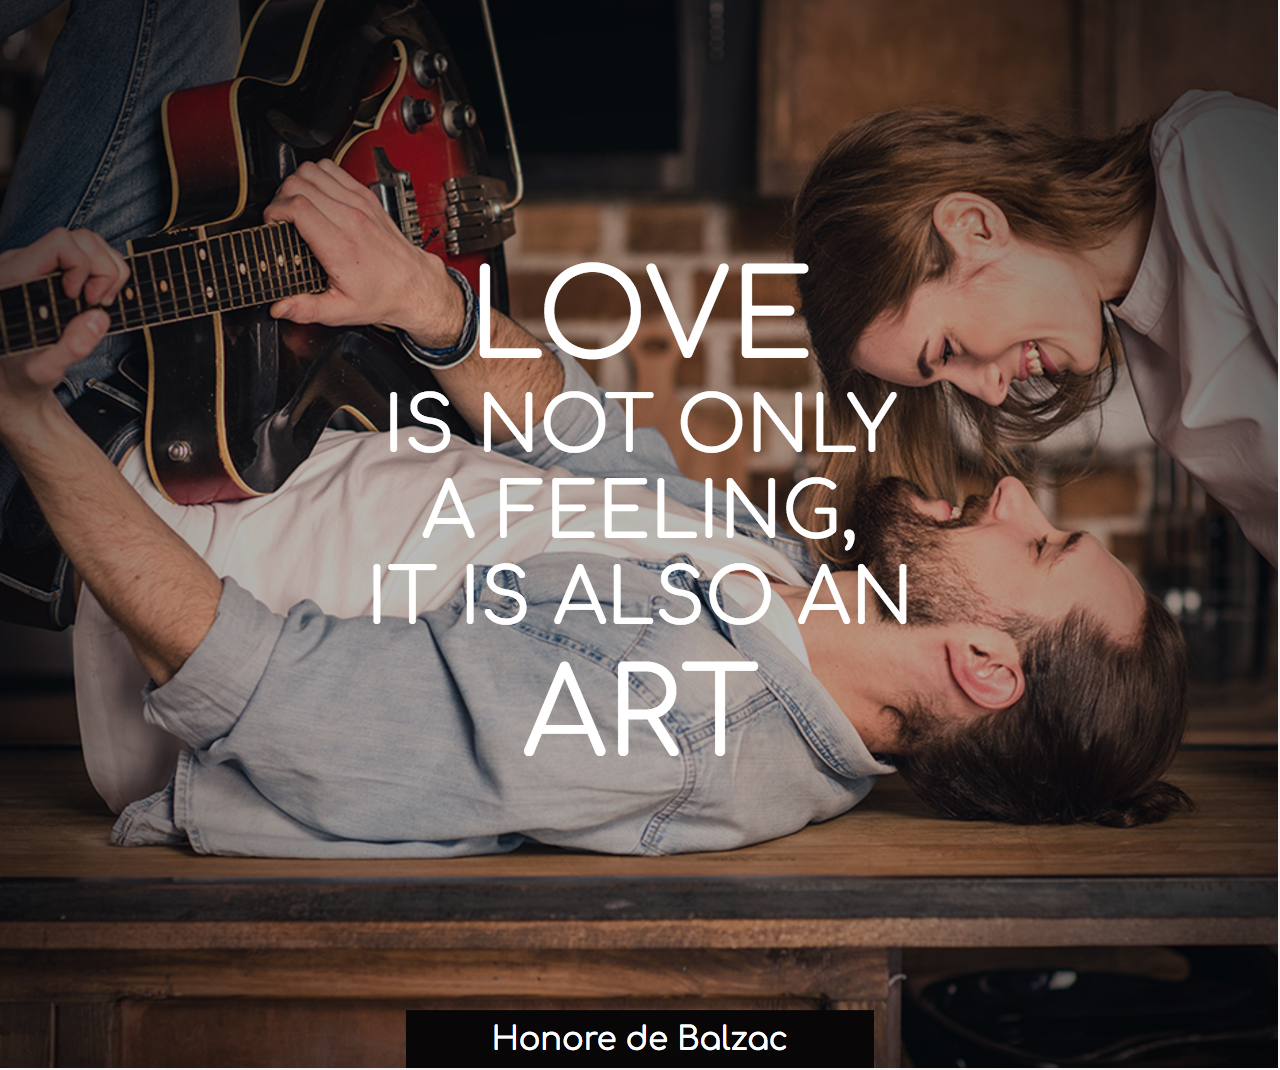 Love is not a feeling, it is an art